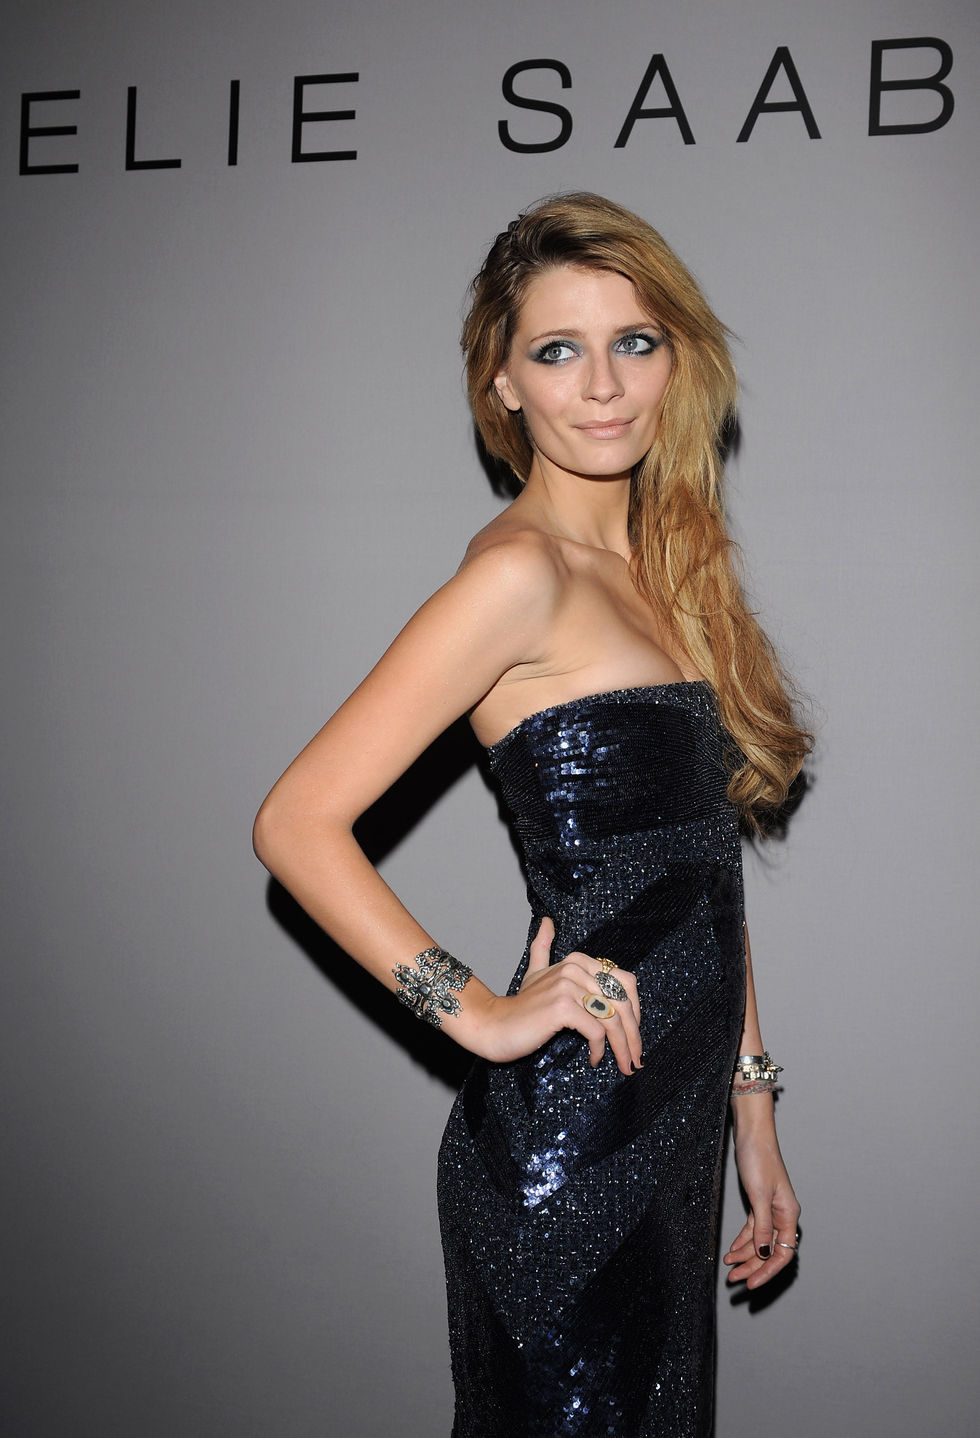 mischa-barton-elie-saab-springsummer-2009-collection-in-paris-01